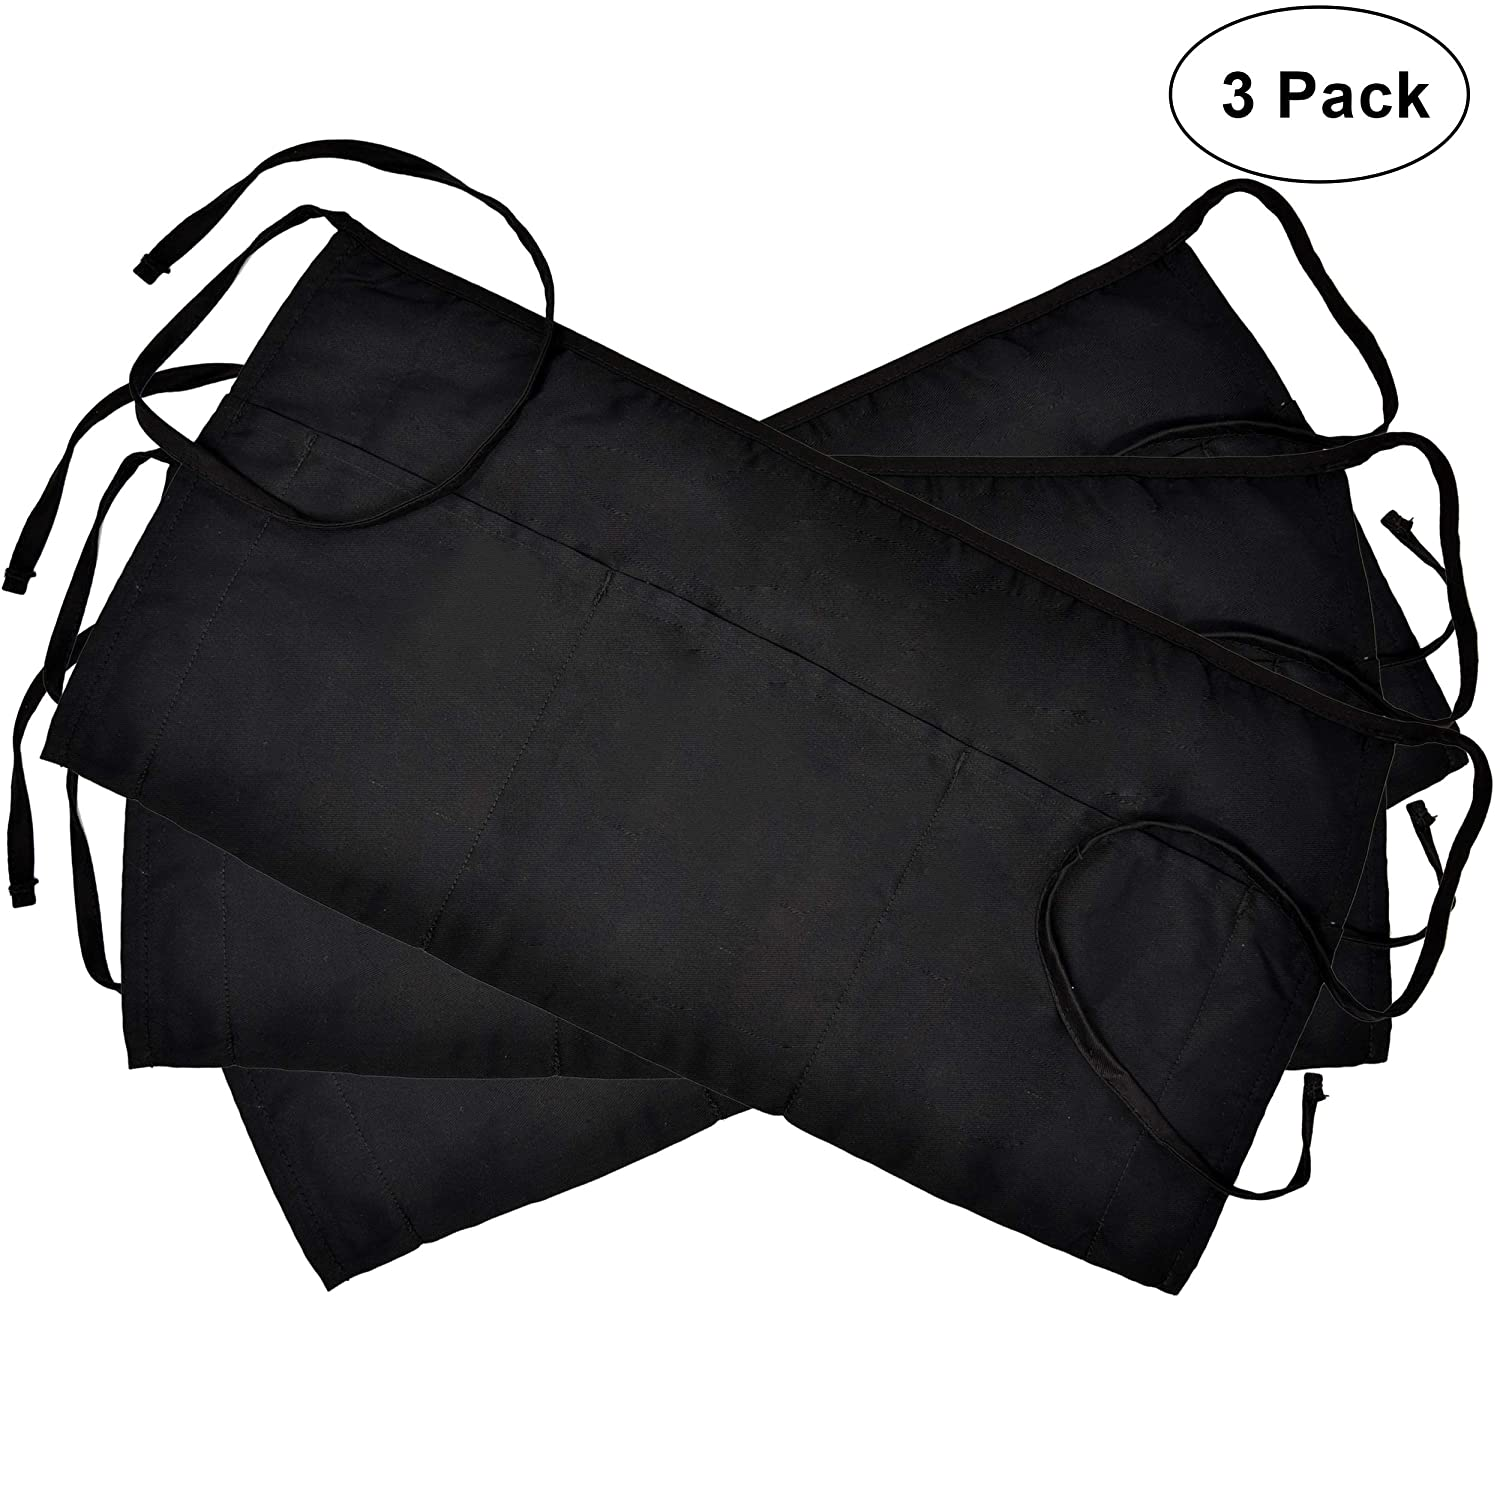 3 Pockets Cotton Waist Apron 3 Pack 24 x 12 inch Kitchen Restaurant Bistro Craft Garden Half Short Aprons For Men, Women, Chef, Baker, Servers, Waitress, Waiter, Craftsmen Work Apron Uniform, Black Perlli RCBP